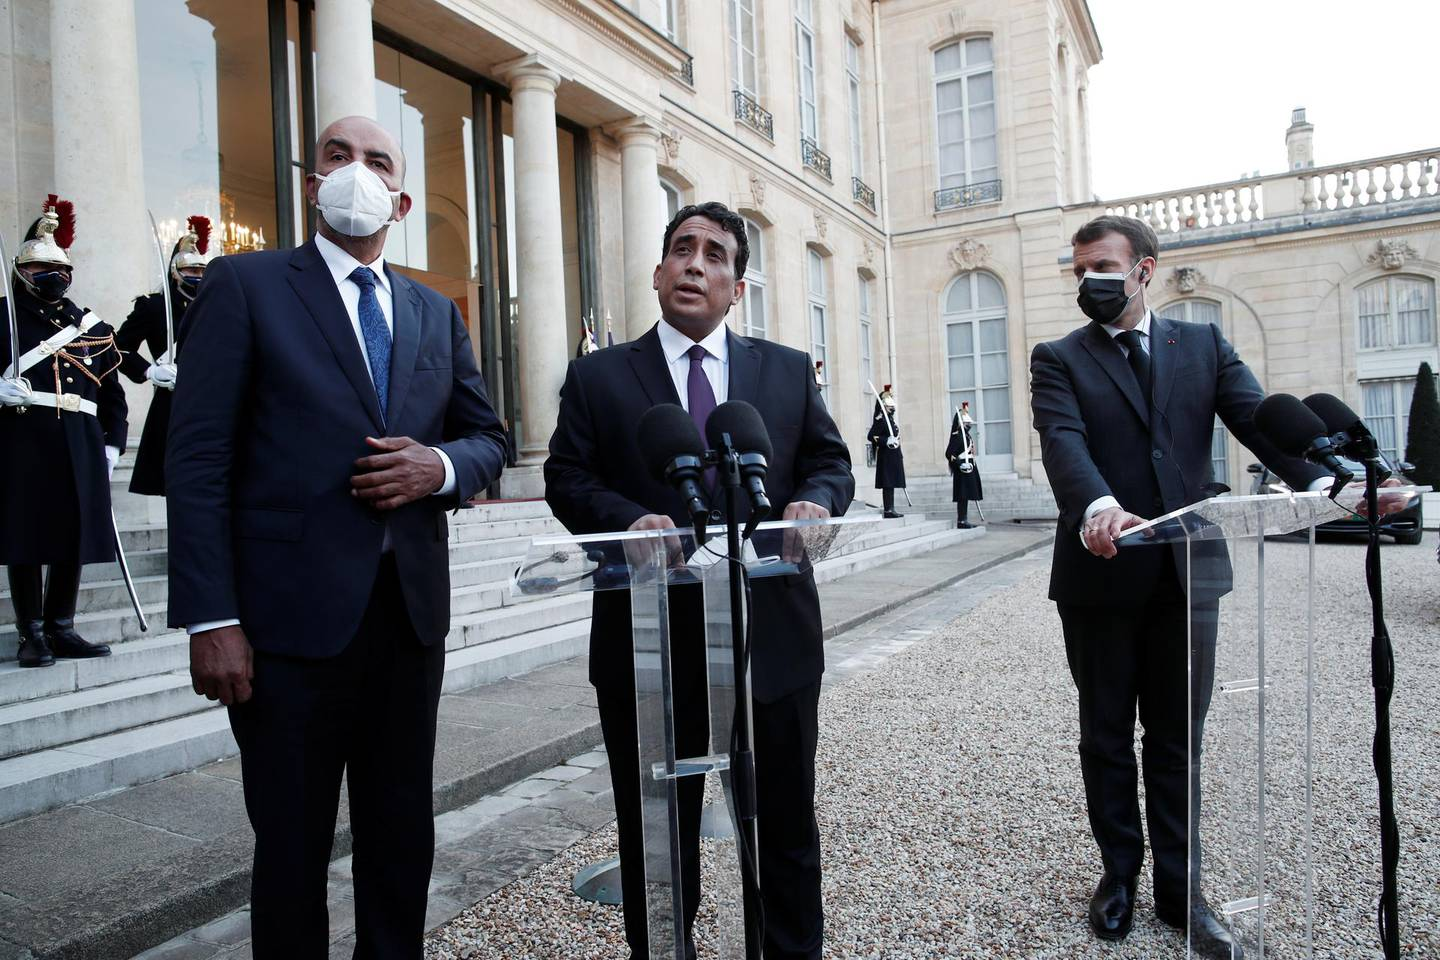 French President Emmanuel Macron, wearing a protective face mask, talks to the press with Mohamed al-Menfi, Head of the Presidential Council of Libya and Musa al-Koni, Vice-President of the Presidential Council of Libya after a meeting at the Elysee Palace in Paris, France, March 23, 2021. REUTERS/Benoit Tessier